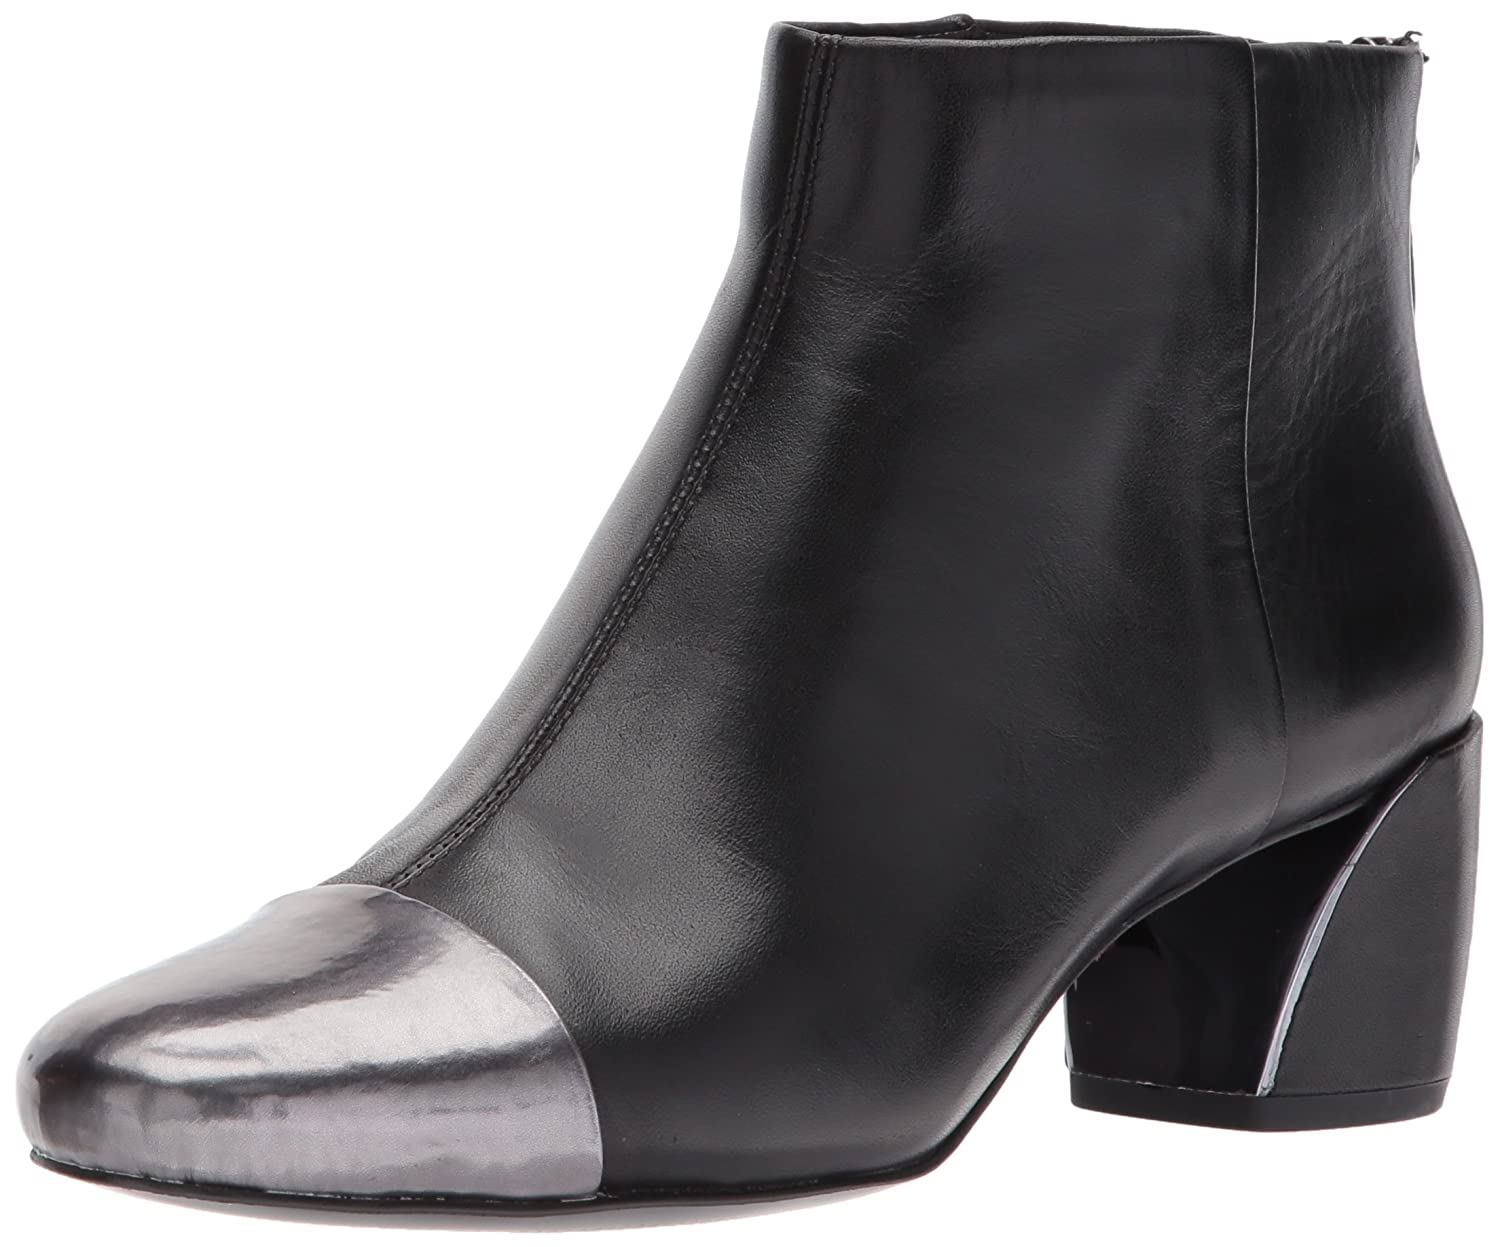 Nine West Women's Joannie Ankle Boot B01N3CHU68 7.5 B(M) US|Black/Pewter Leather